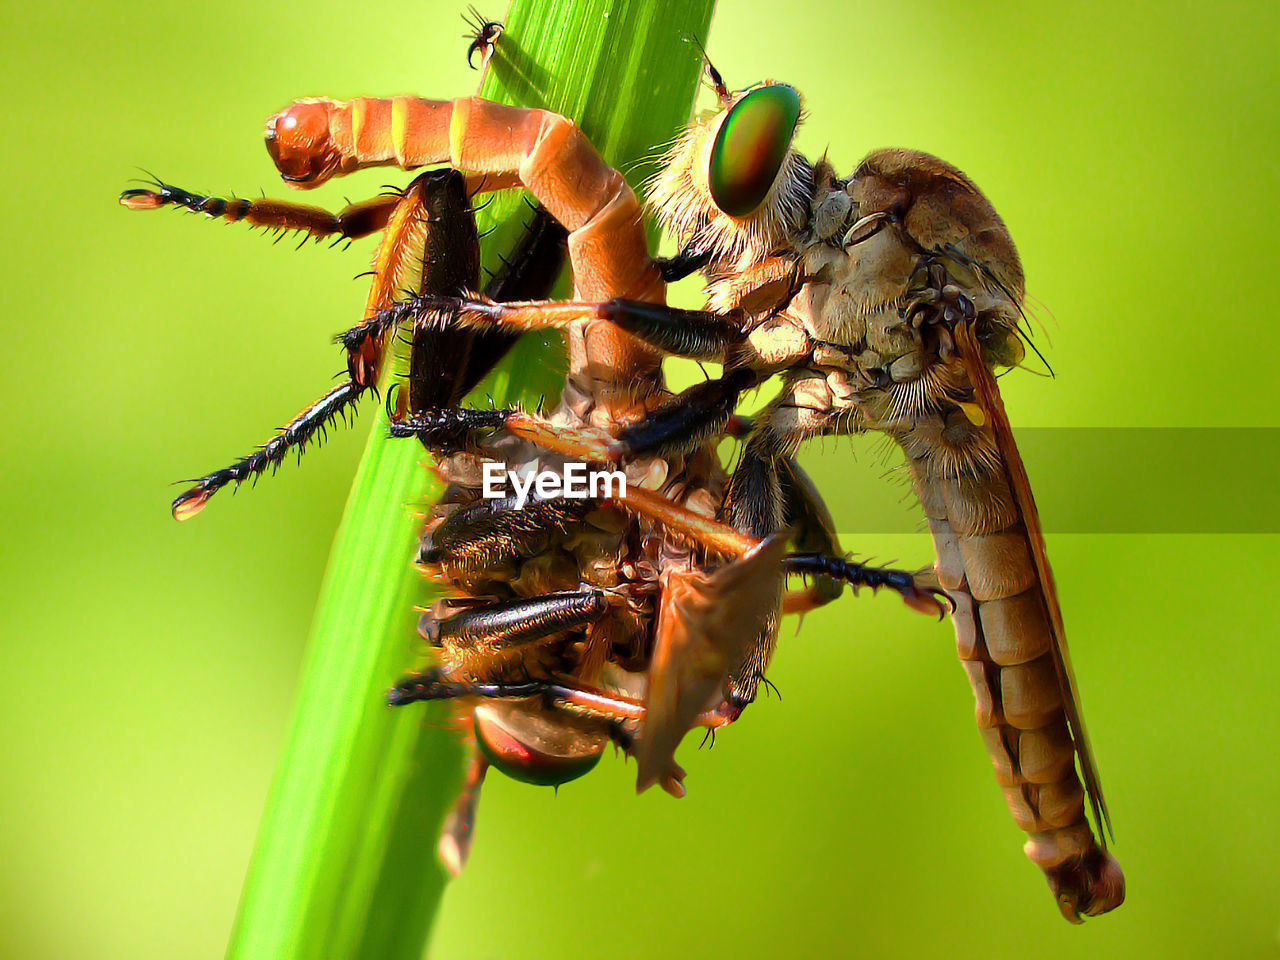 insect, animal themes, animals in the wild, close-up, no people, green color, one animal, animal wildlife, nature, day, outdoors